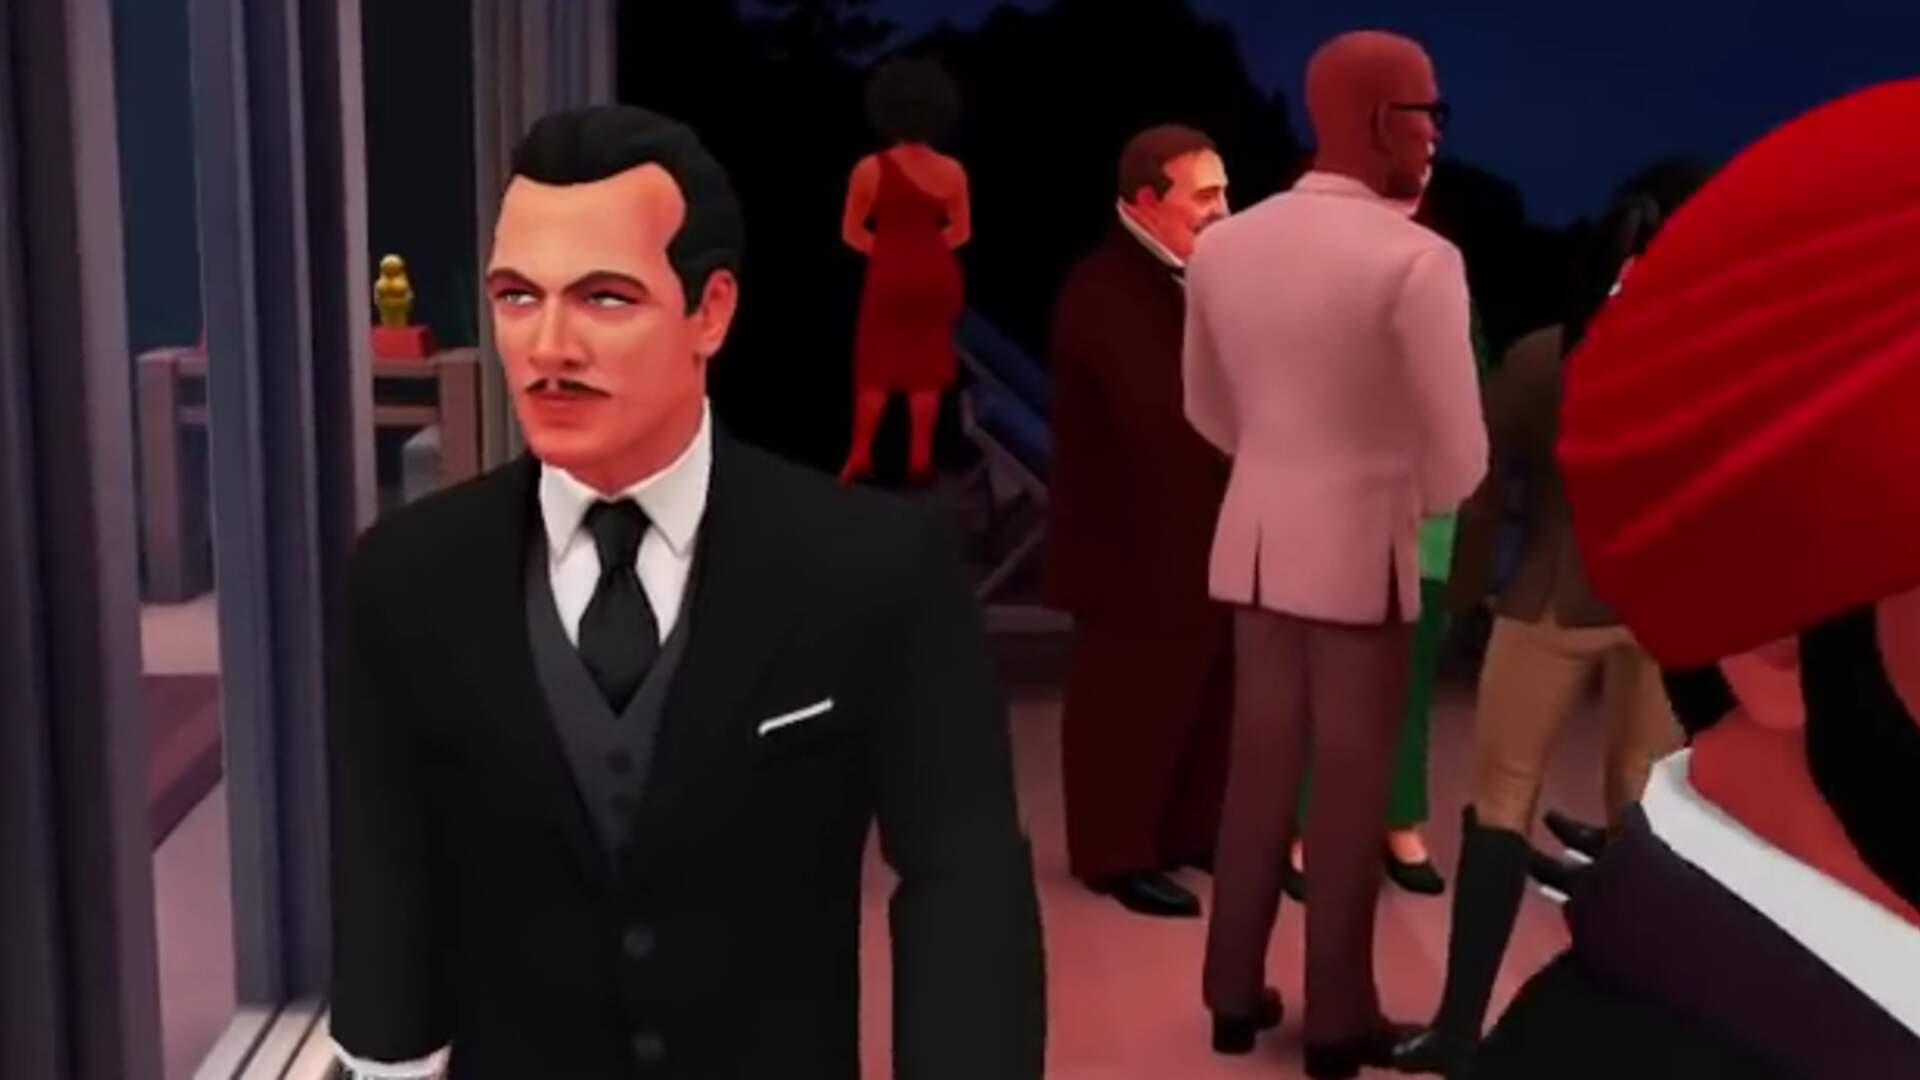 SpyParty Comes to Steam Early Access After Eight Years In Development